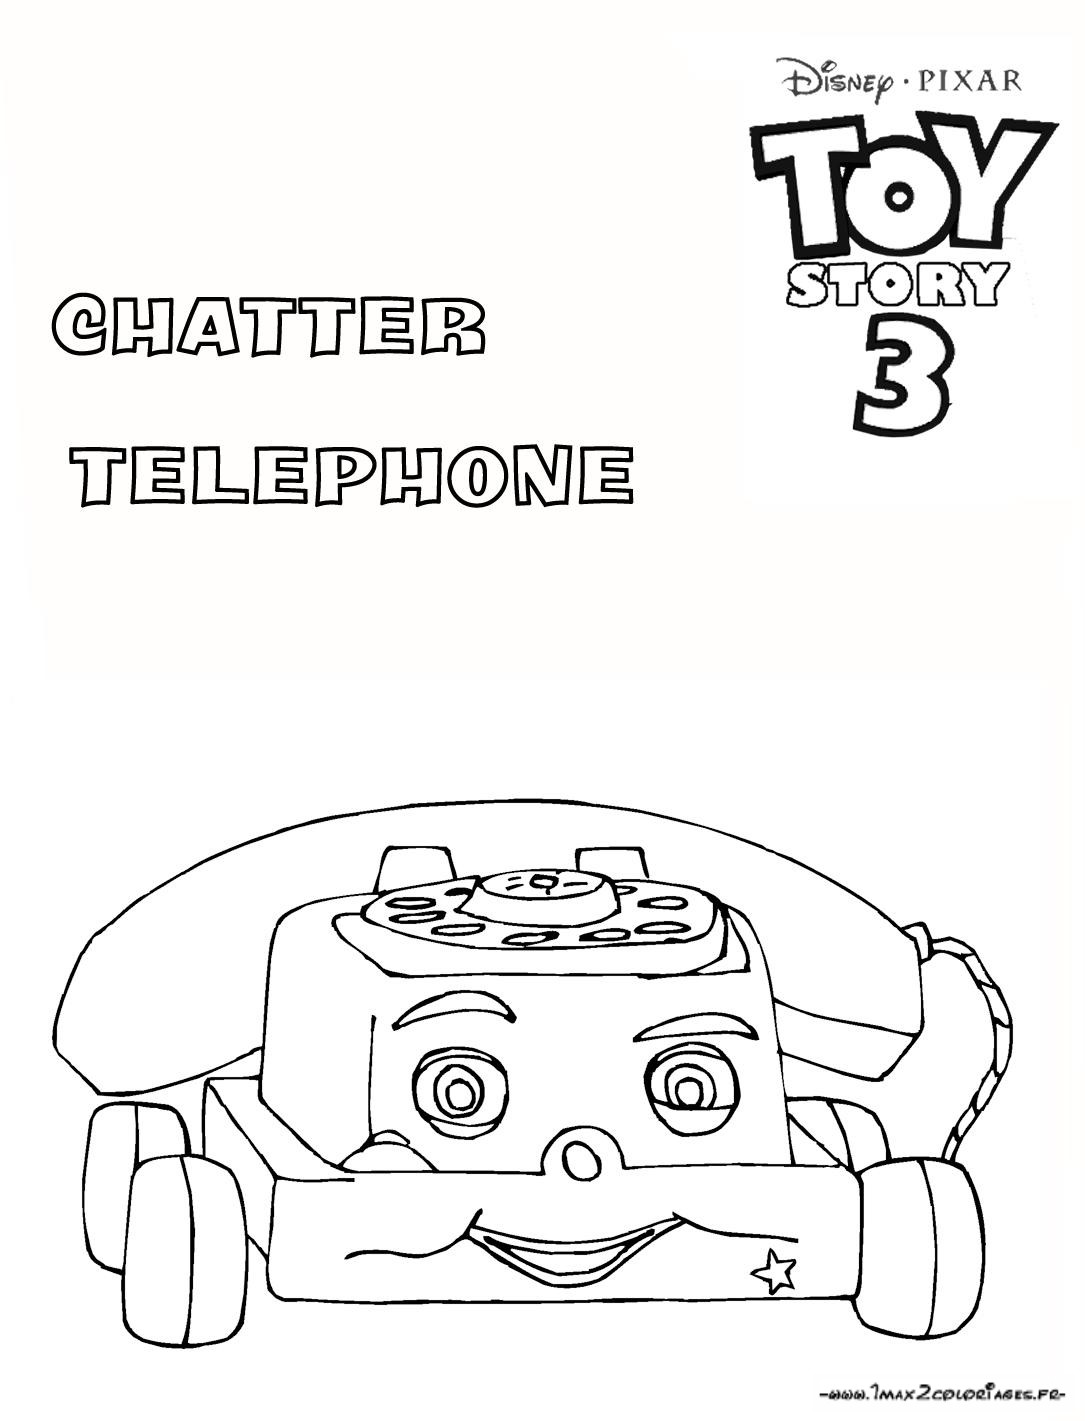 Coloriage a imprimer toy story 3 chatter le telephone gratuit et colorier - Coloriage toy story 3 ...